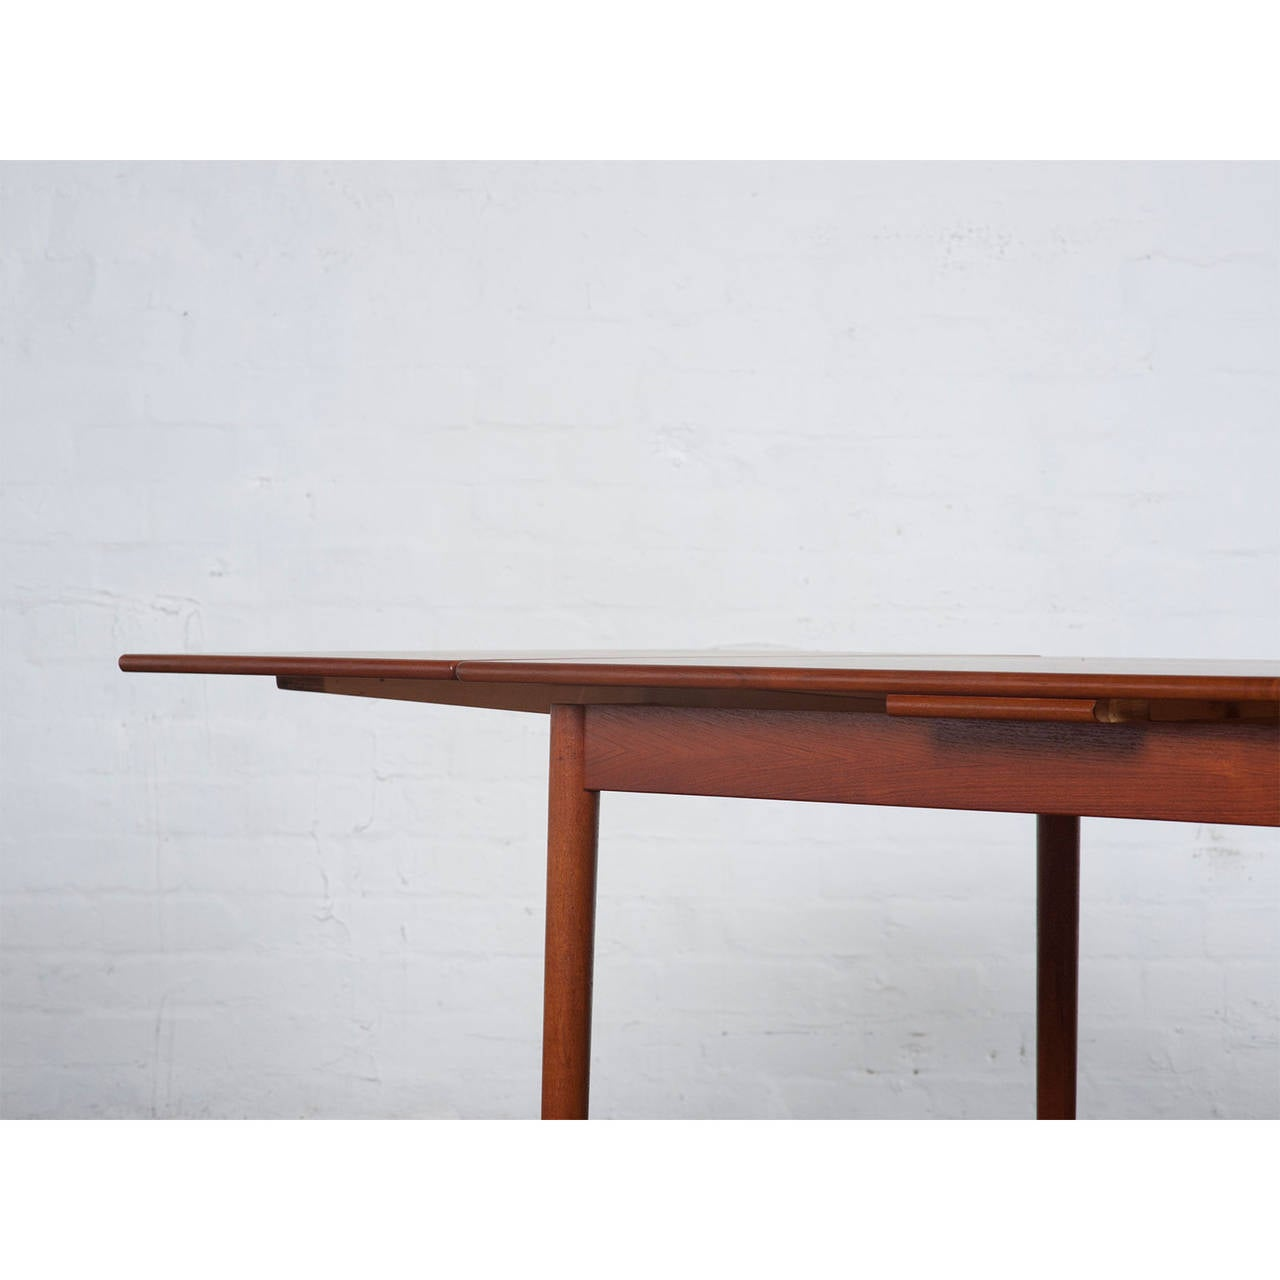 Mid Century Danish Teak Dining Table For Sale at 1stdibs : NewTeakDiningTabledetaill from www.1stdibs.com size 1280 x 1280 jpeg 52kB